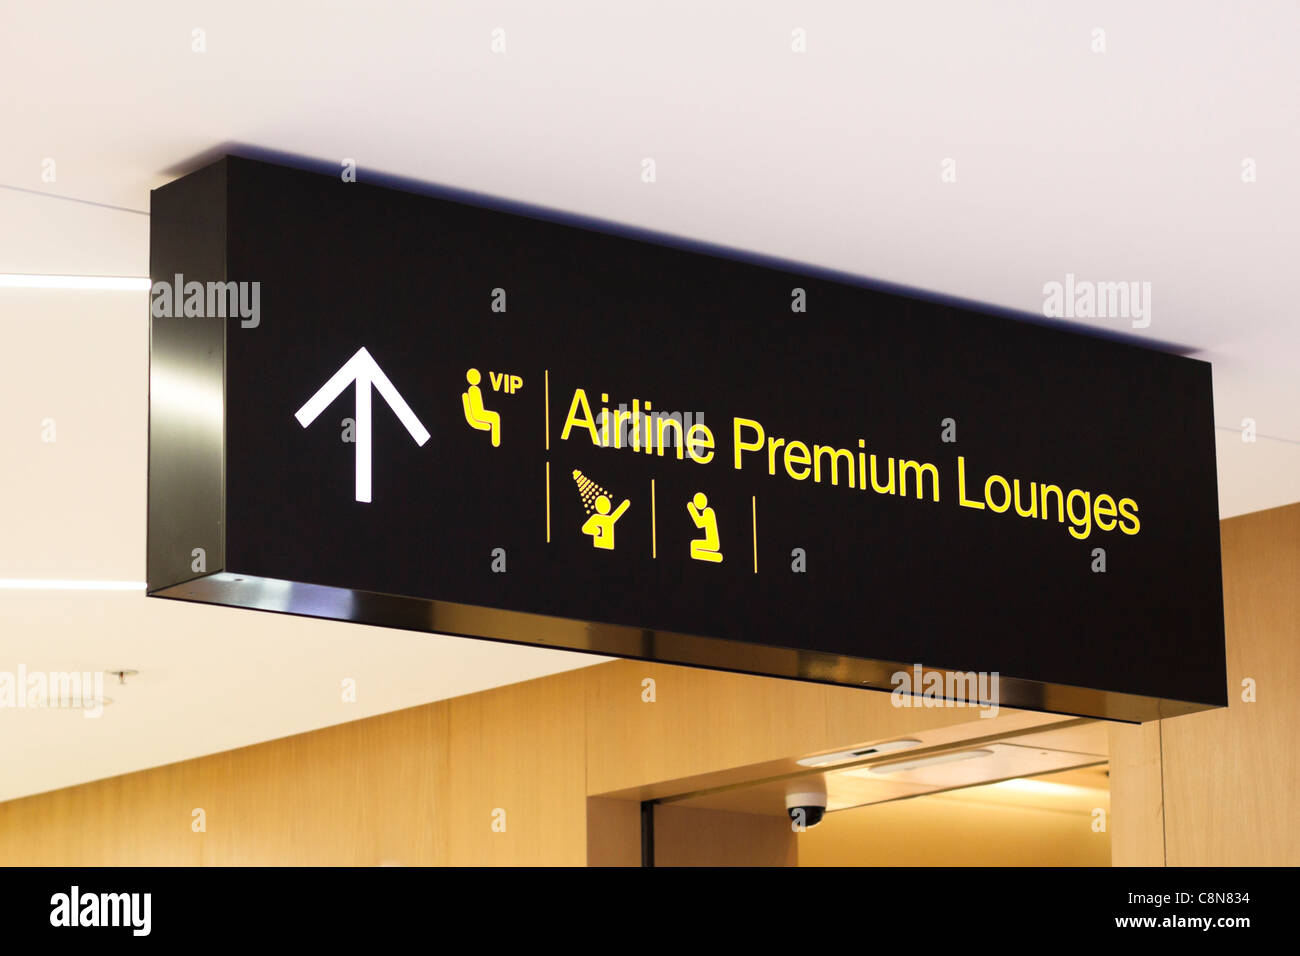 Airport sign, VIP Airline Premium Lounges. - Stock Image